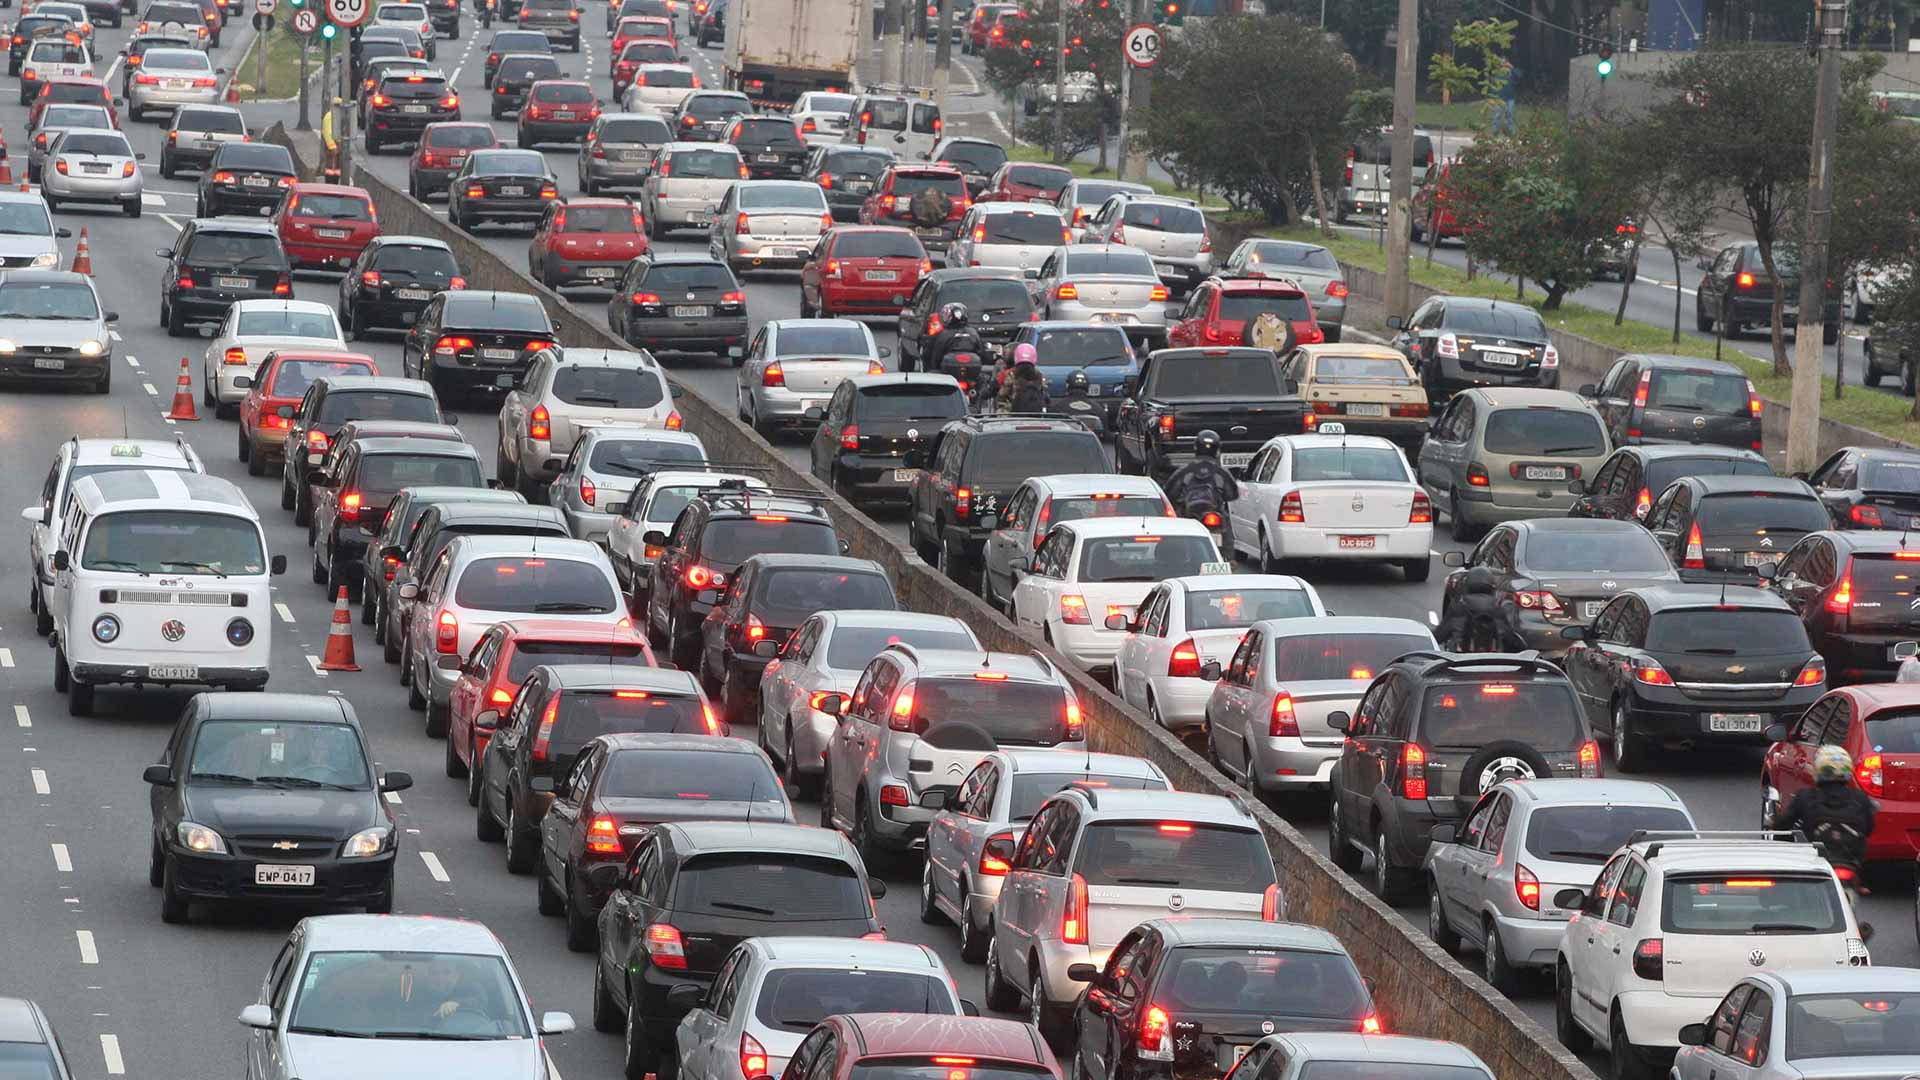 The 10 Biggest Traffic Jams Ever - The Drive